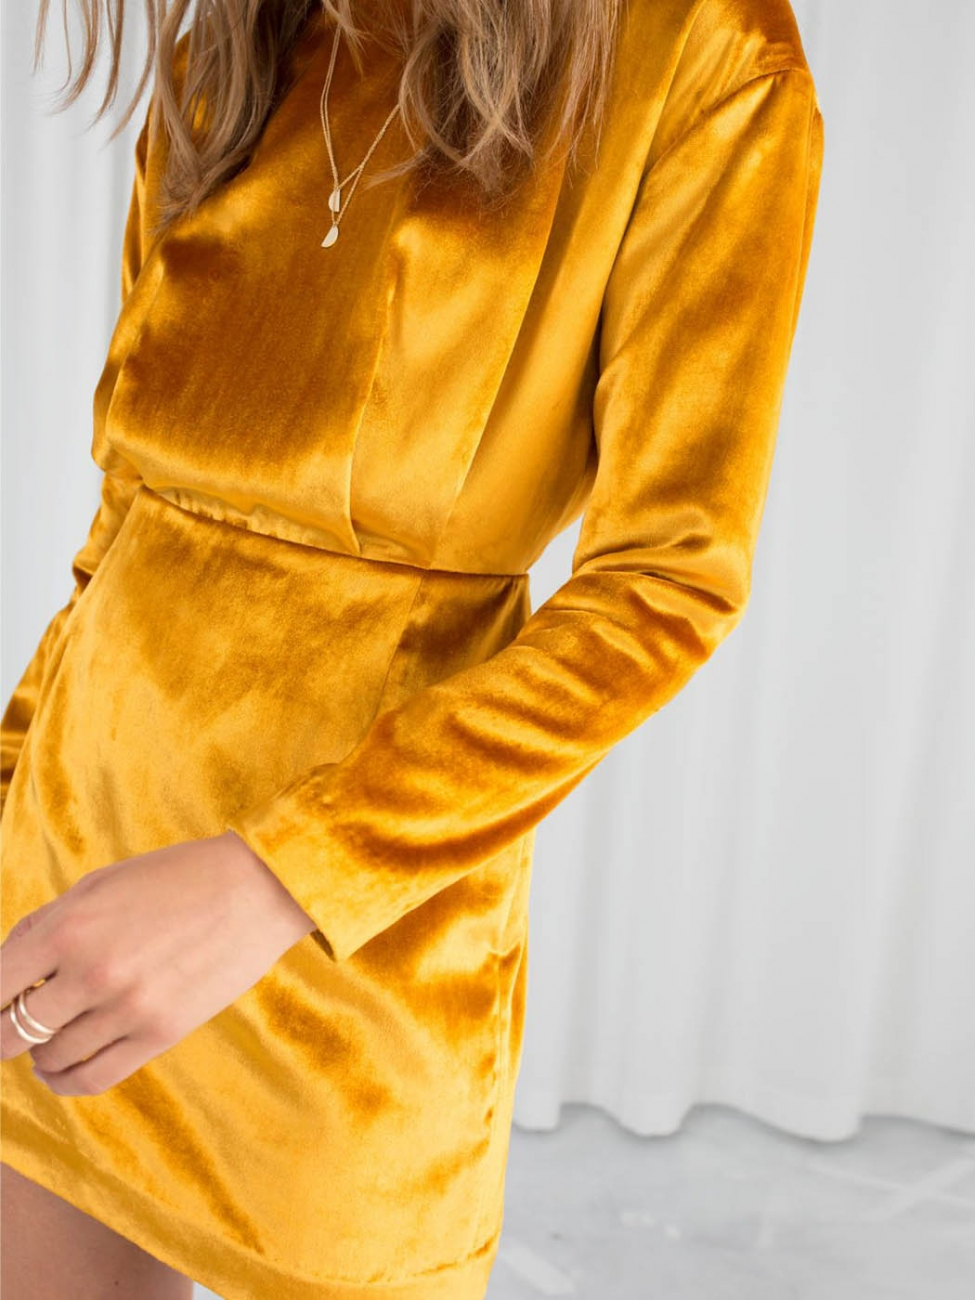 Louise Paris Other Stories Long Sleeves Cinched Gold Yellow Velvet Dress Size 38